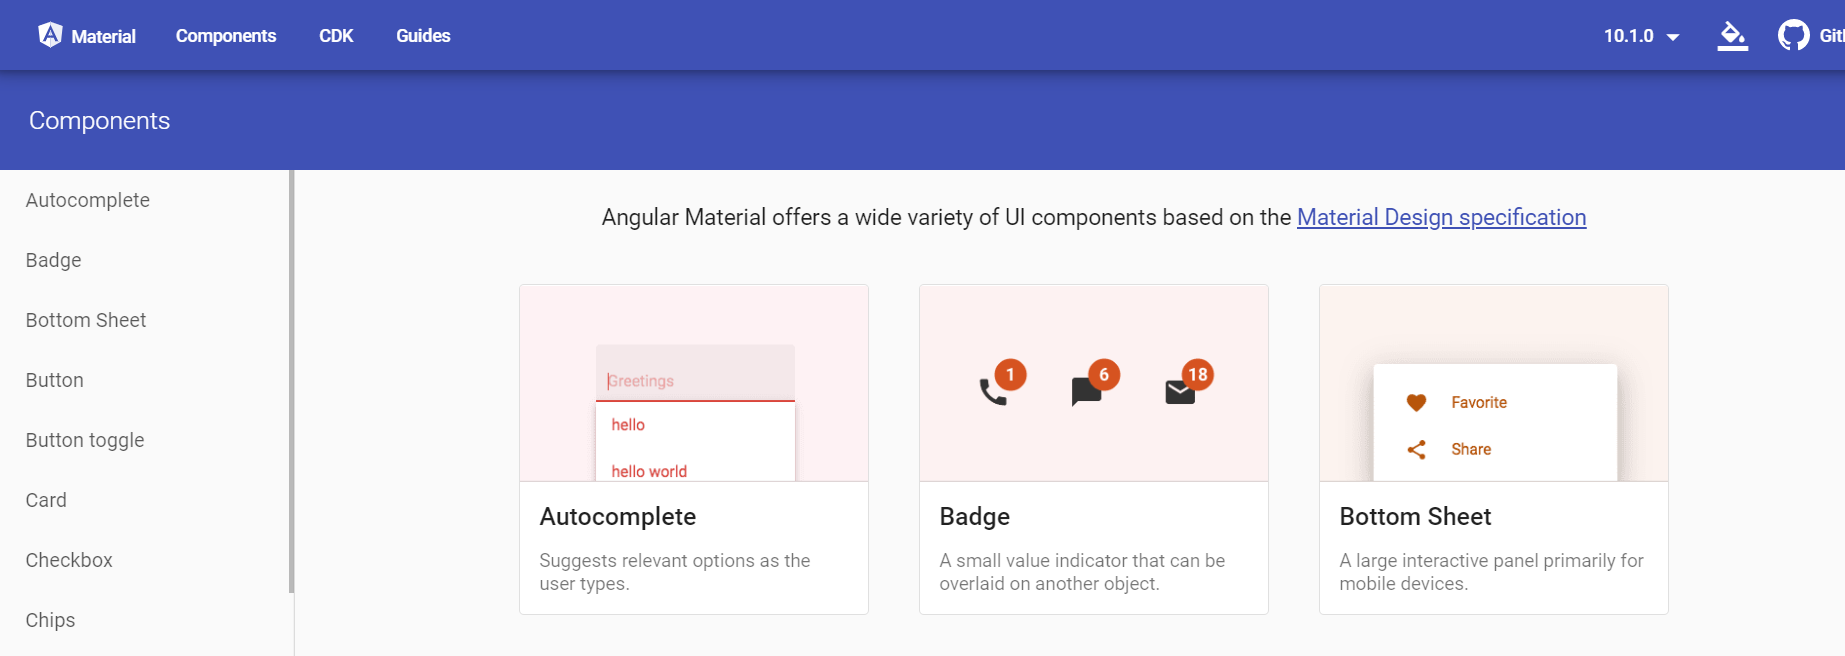 How to add angular material into our angular 10 application?